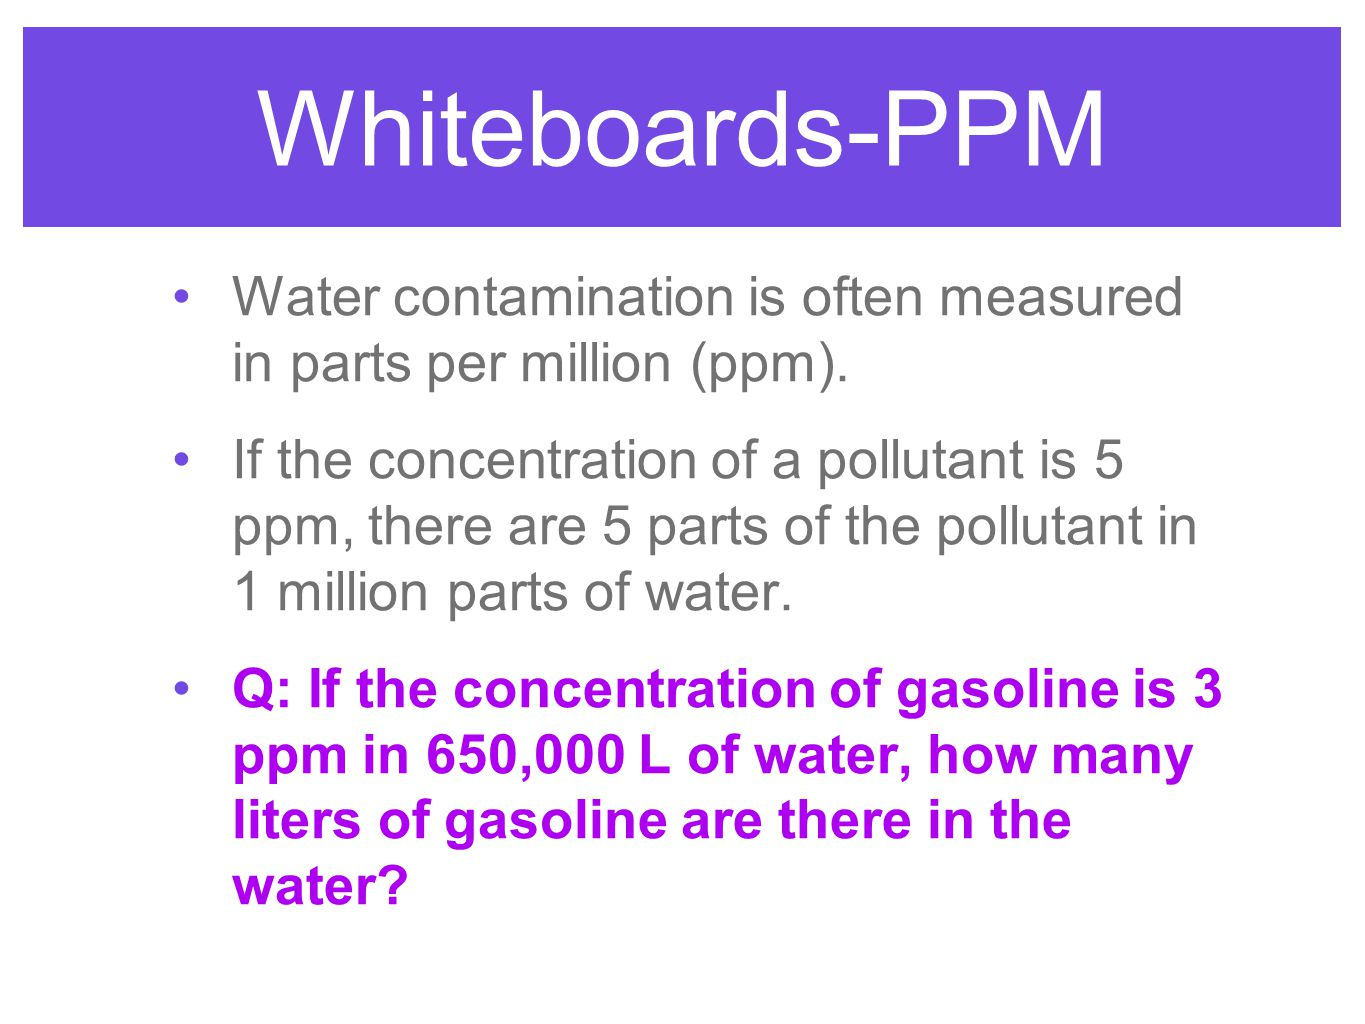 Whiteboards-PPM Water contamination is often measured in parts per million (ppm).